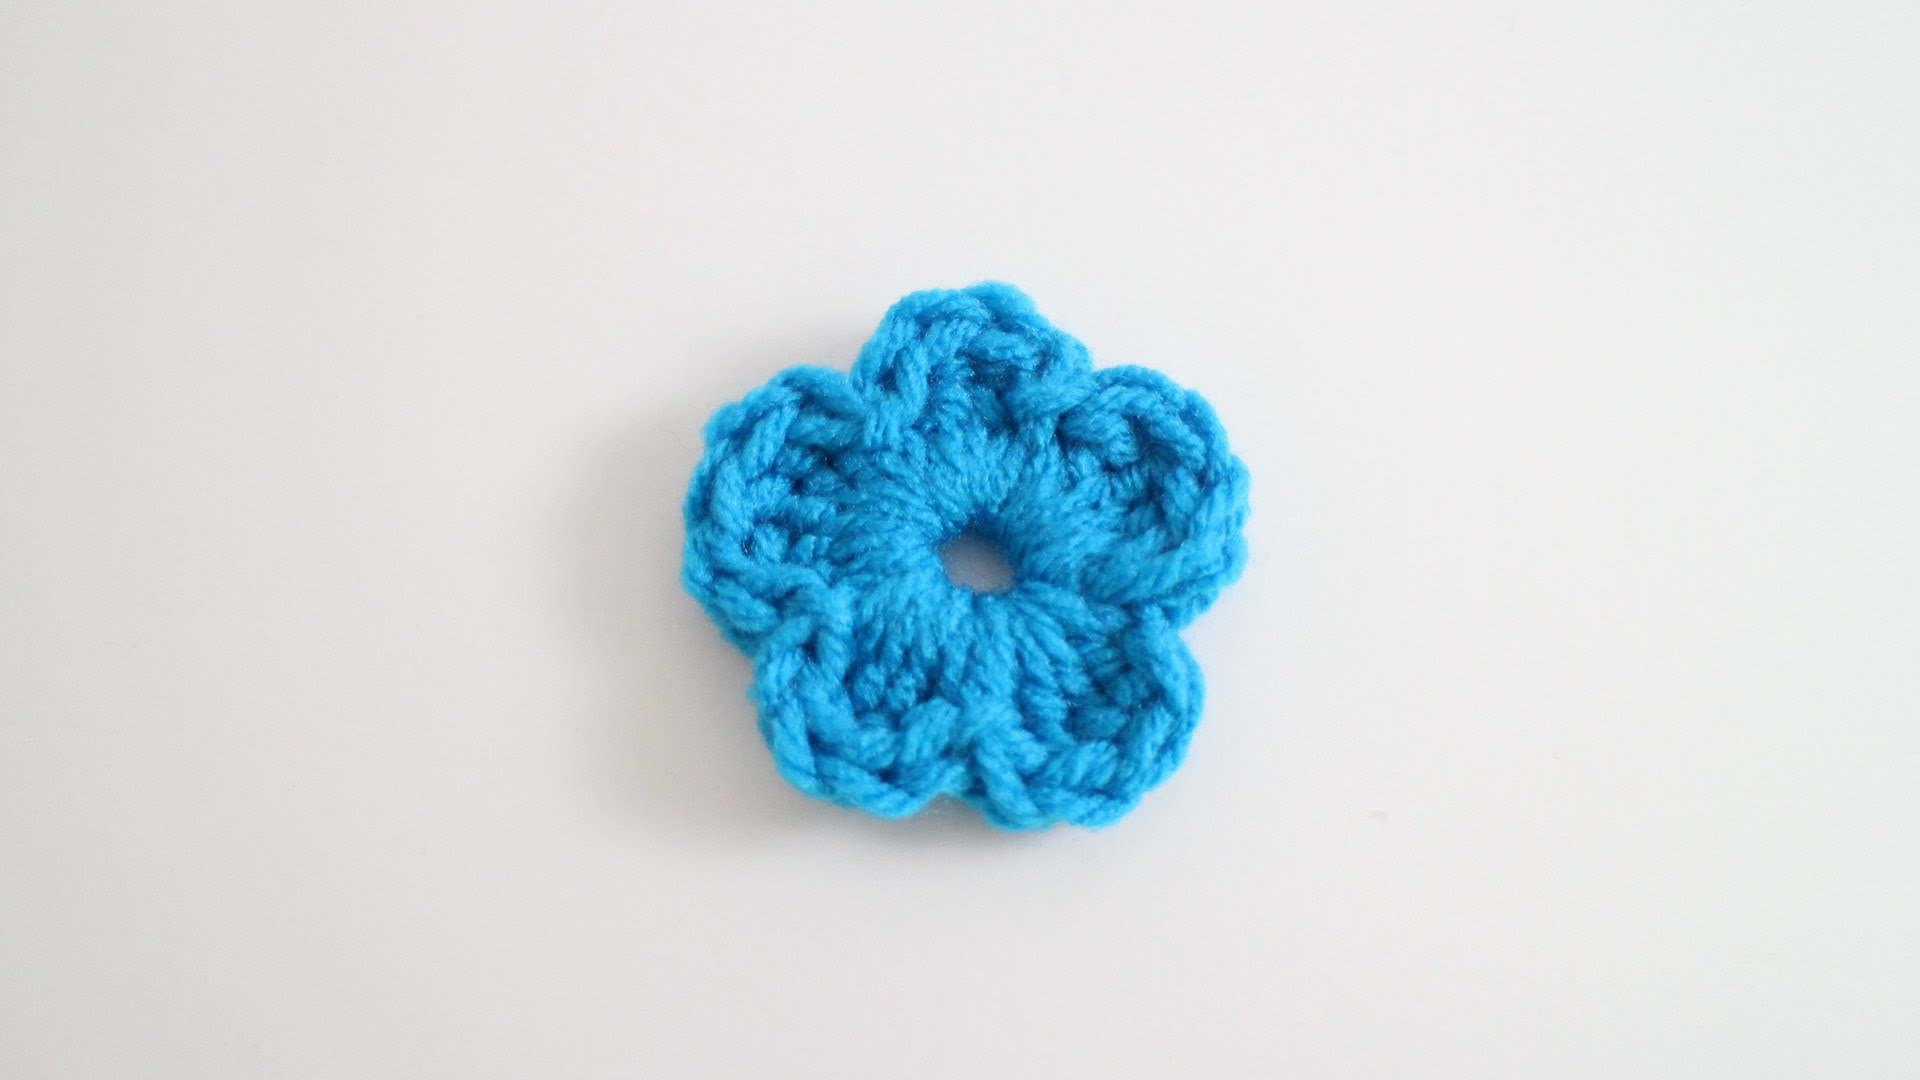 easy crochet flower - youtube lrfderx